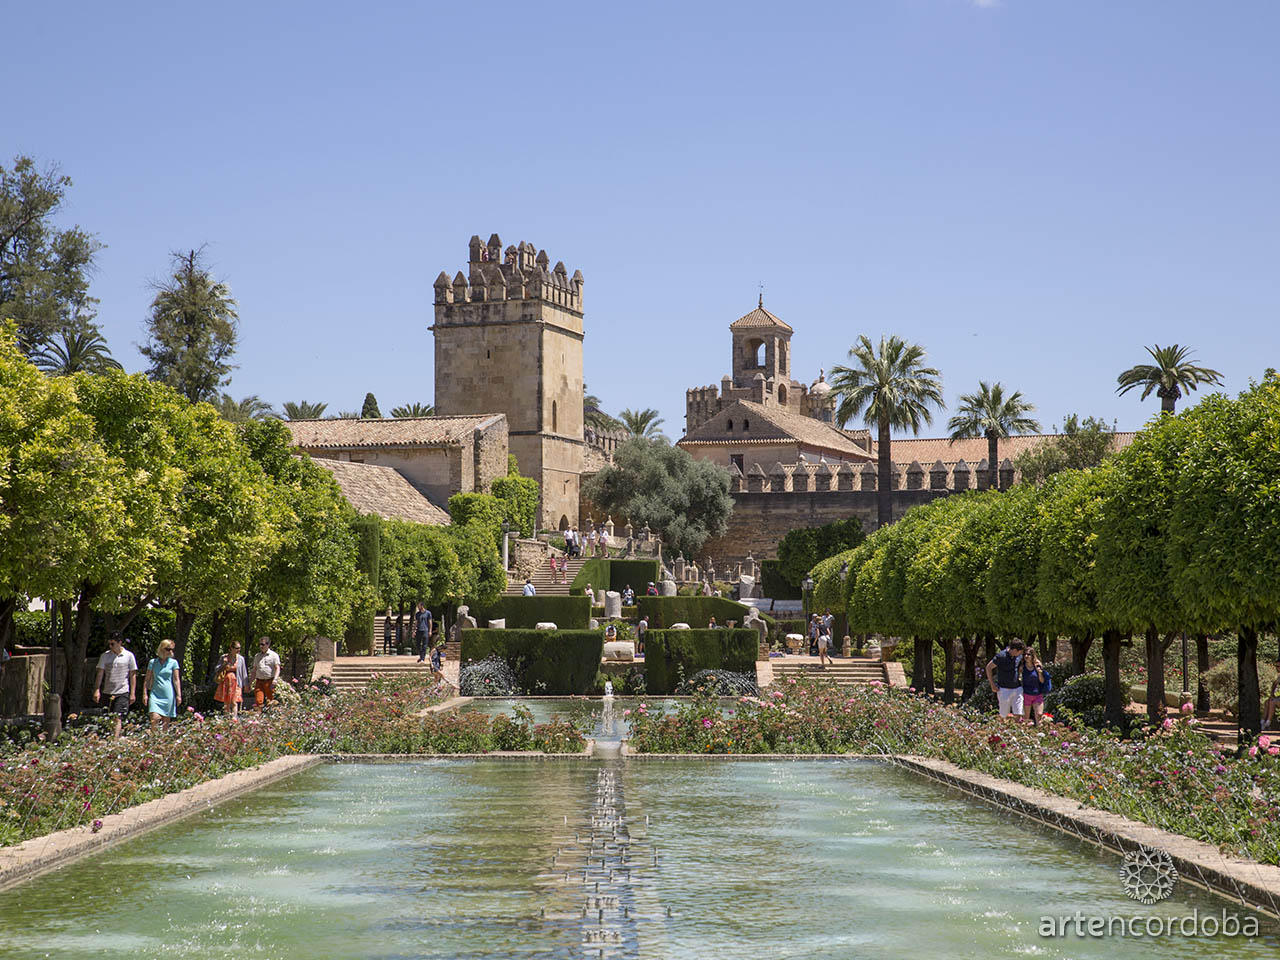 Guided Tour to the Alcazar of the Christian Monarchs